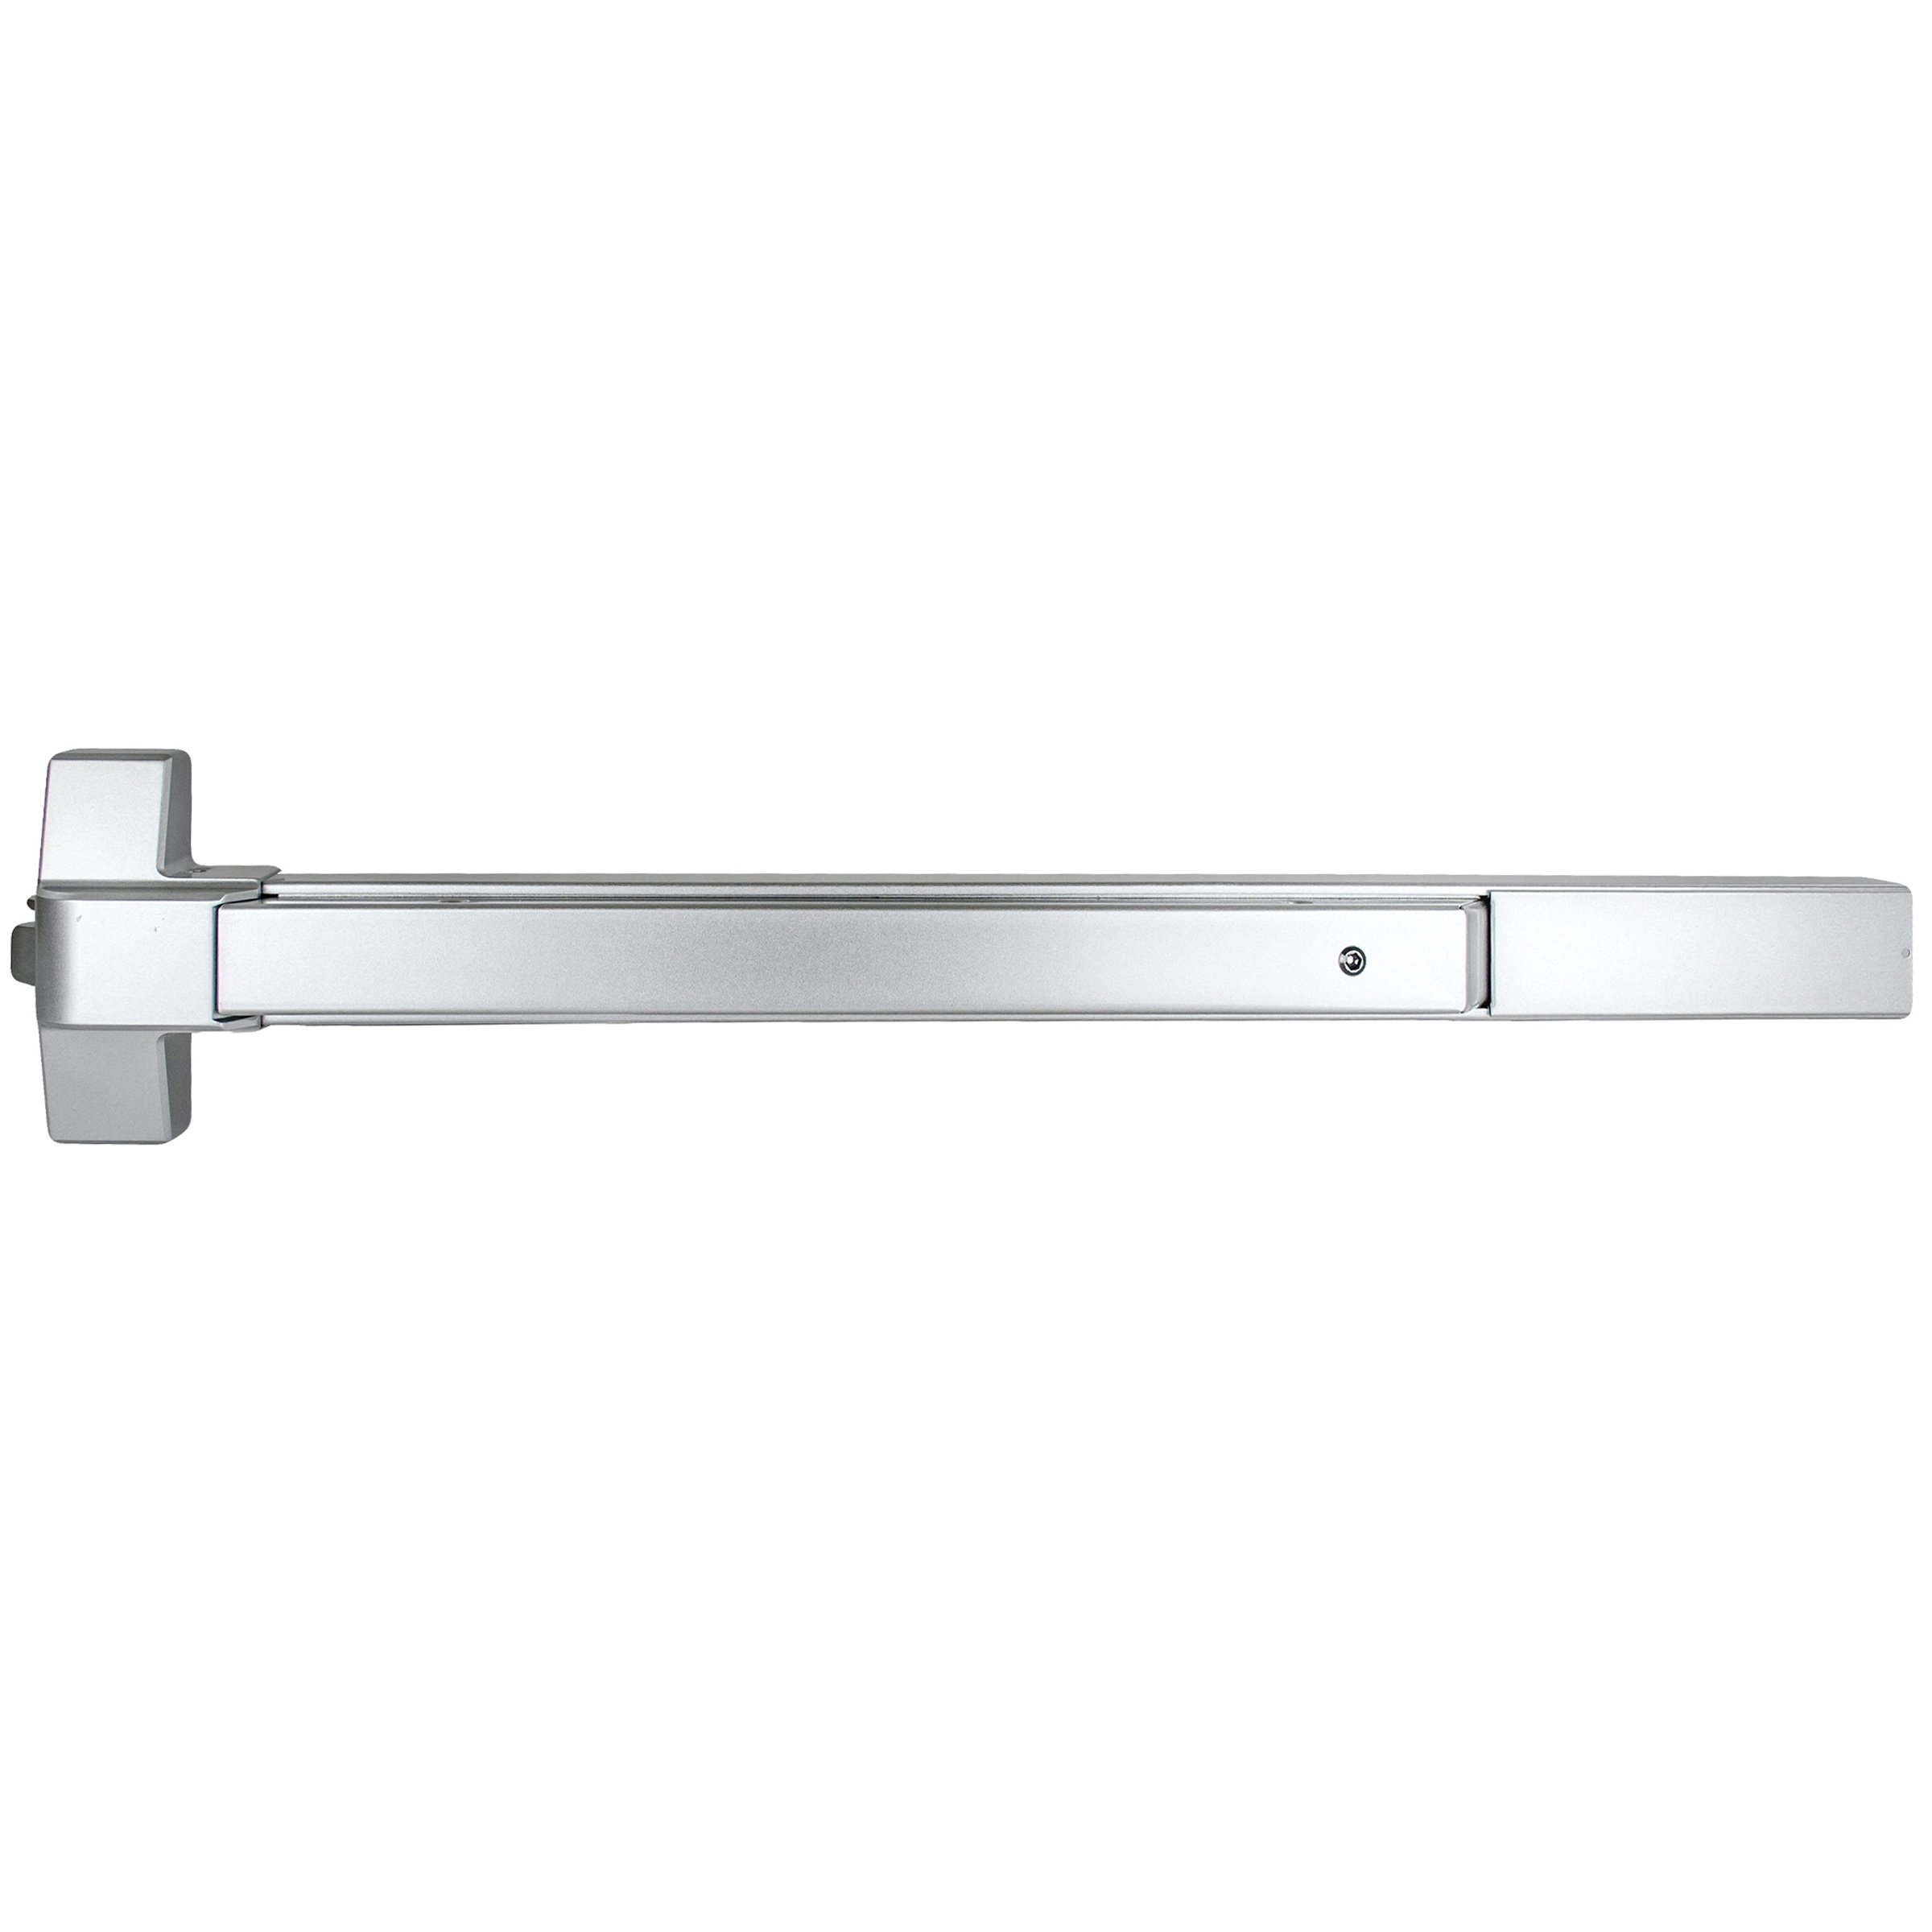 Global Door Controls 48 in. Aluminum Touch Bar Exit Device